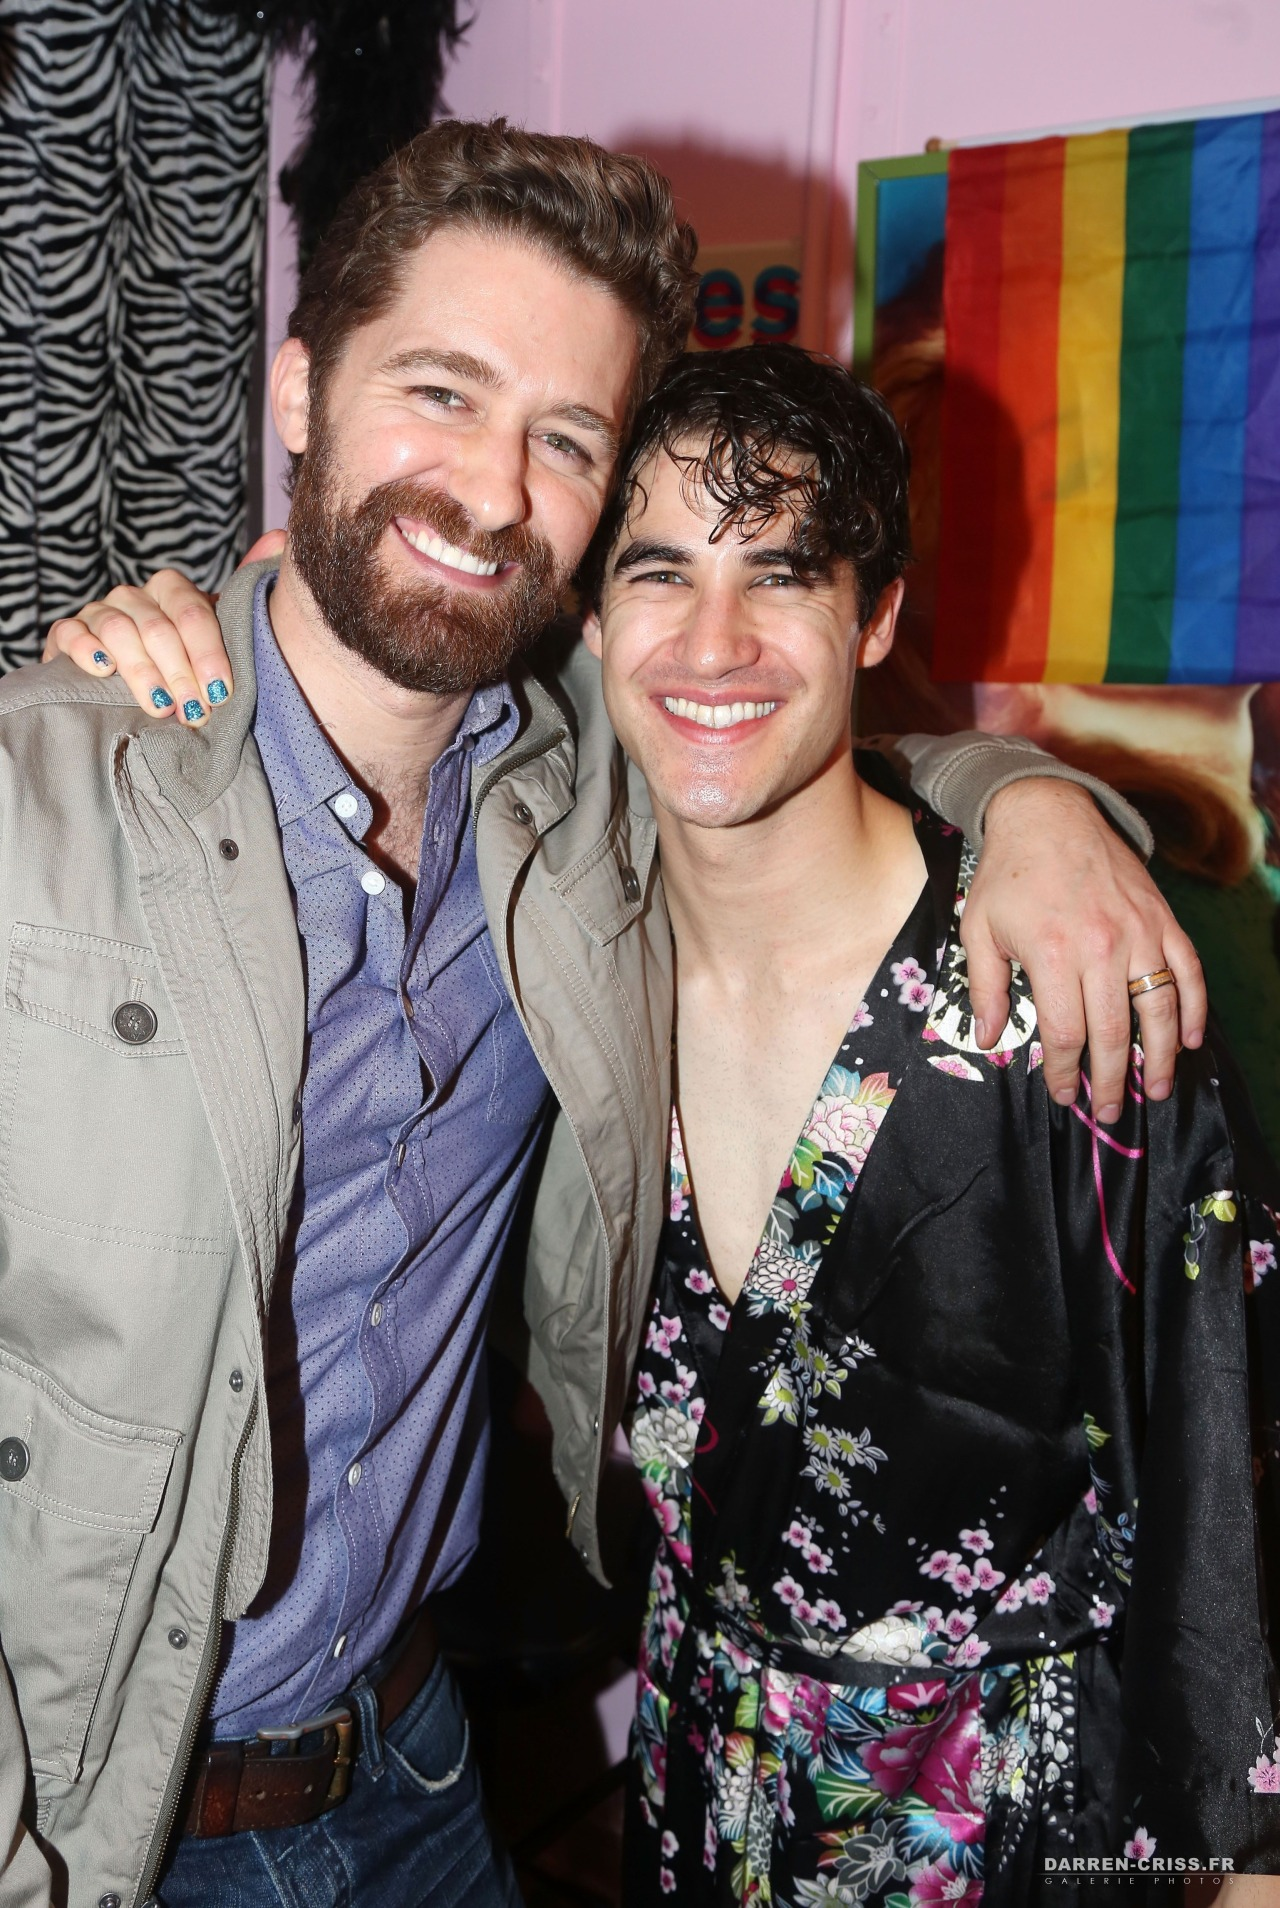 soproud - Who saw Darren in Hedwig and the Angry Inch on Broadway? Tumblr_nqpgot07Yr1qayexuo6_1280